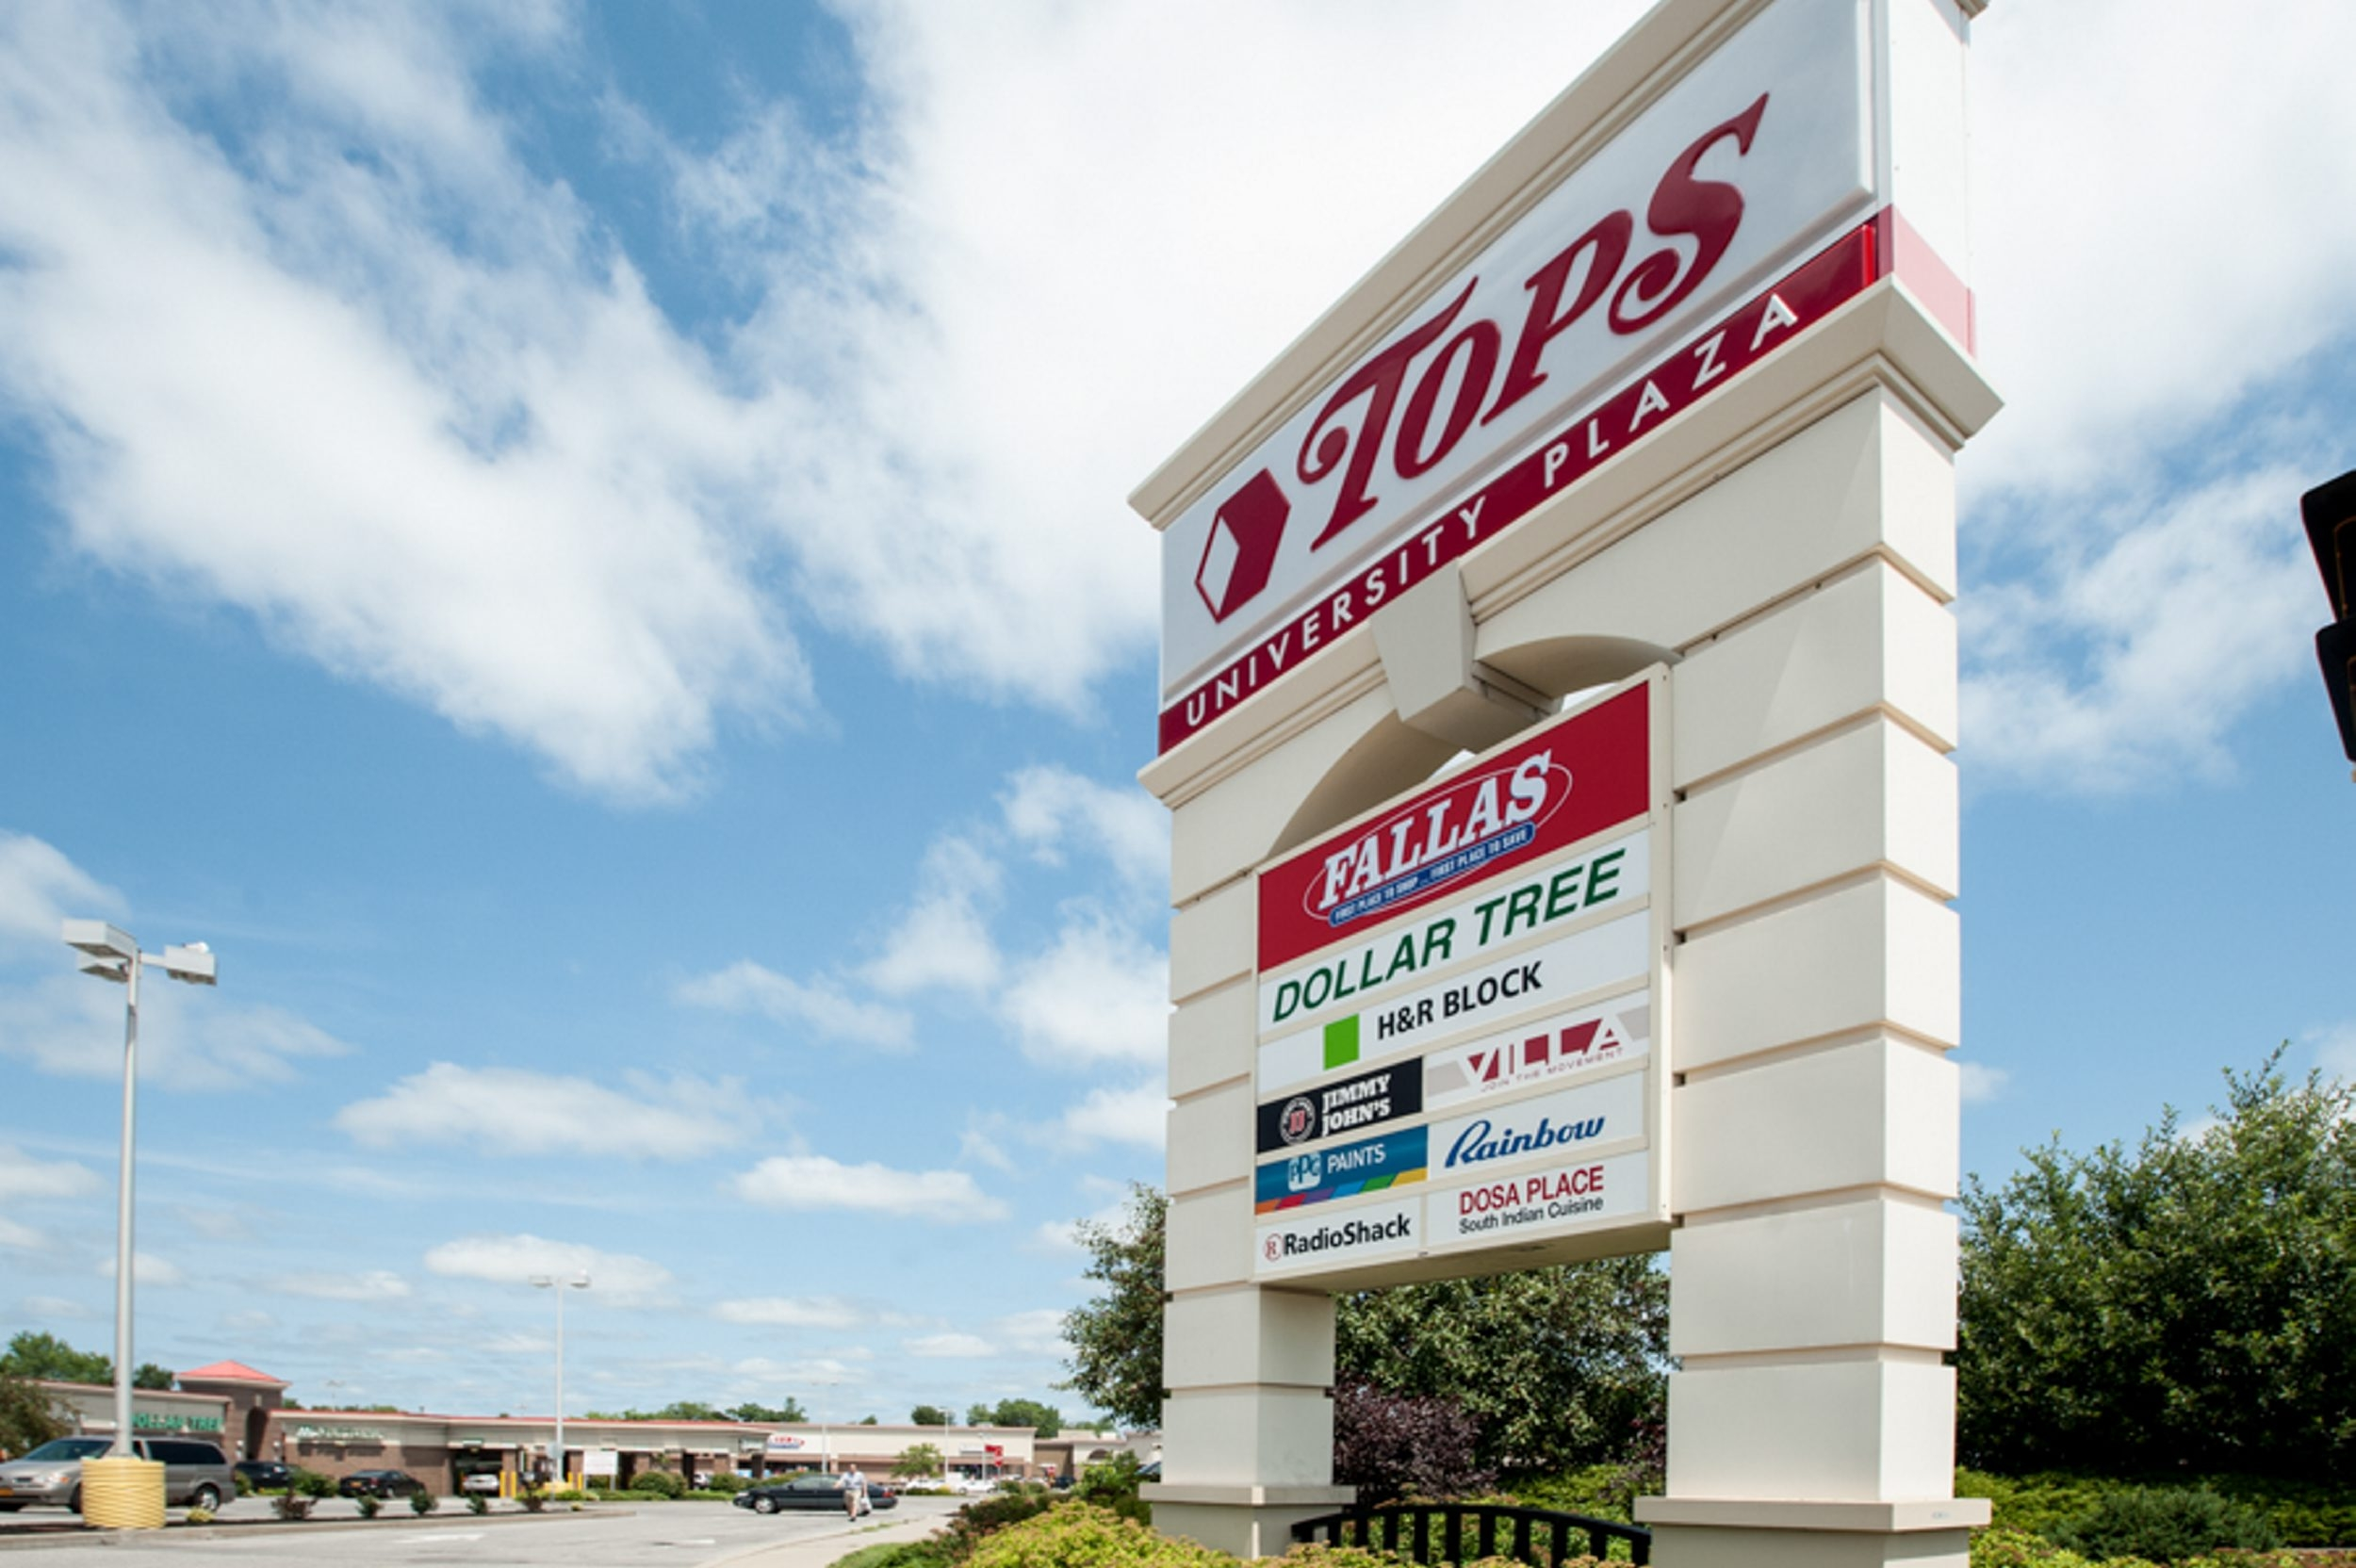 The  University Plaza on Main Street near Bailey Avenue in Amherst is one of five plazas being auctioned that are anchored by Tops.Markets stores.